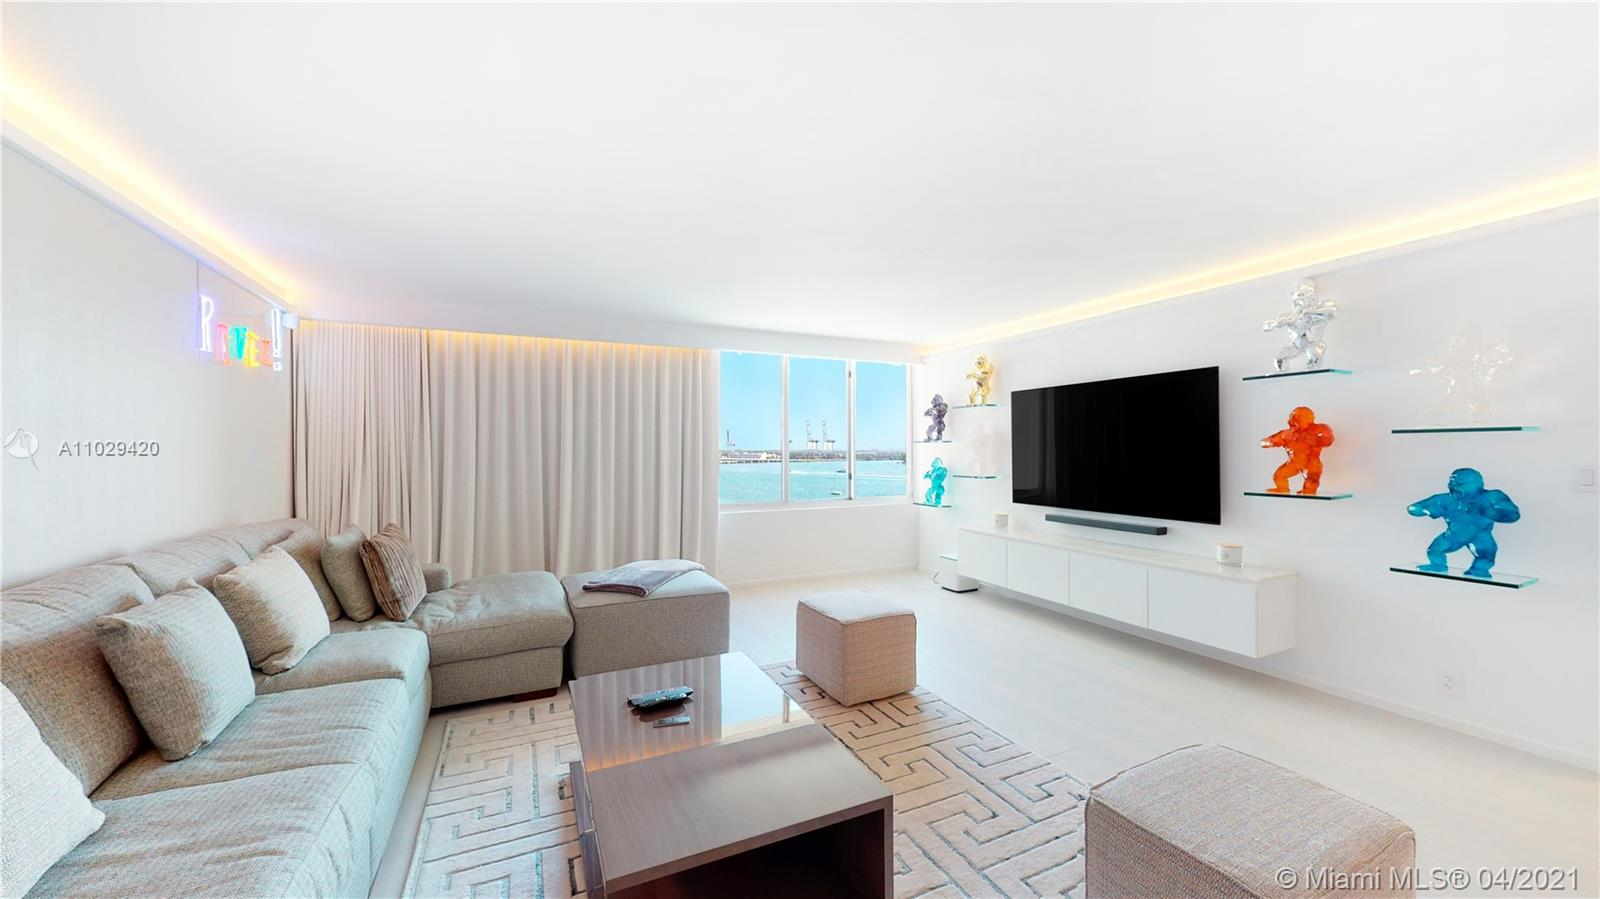 Best Location in South Beach. Incredible Remodel. Italian Finishes throughout including marble and Onyx bathroom. More than 150K spent. Never Lived In, Ready to move in. Call Listing agent for showings!!!